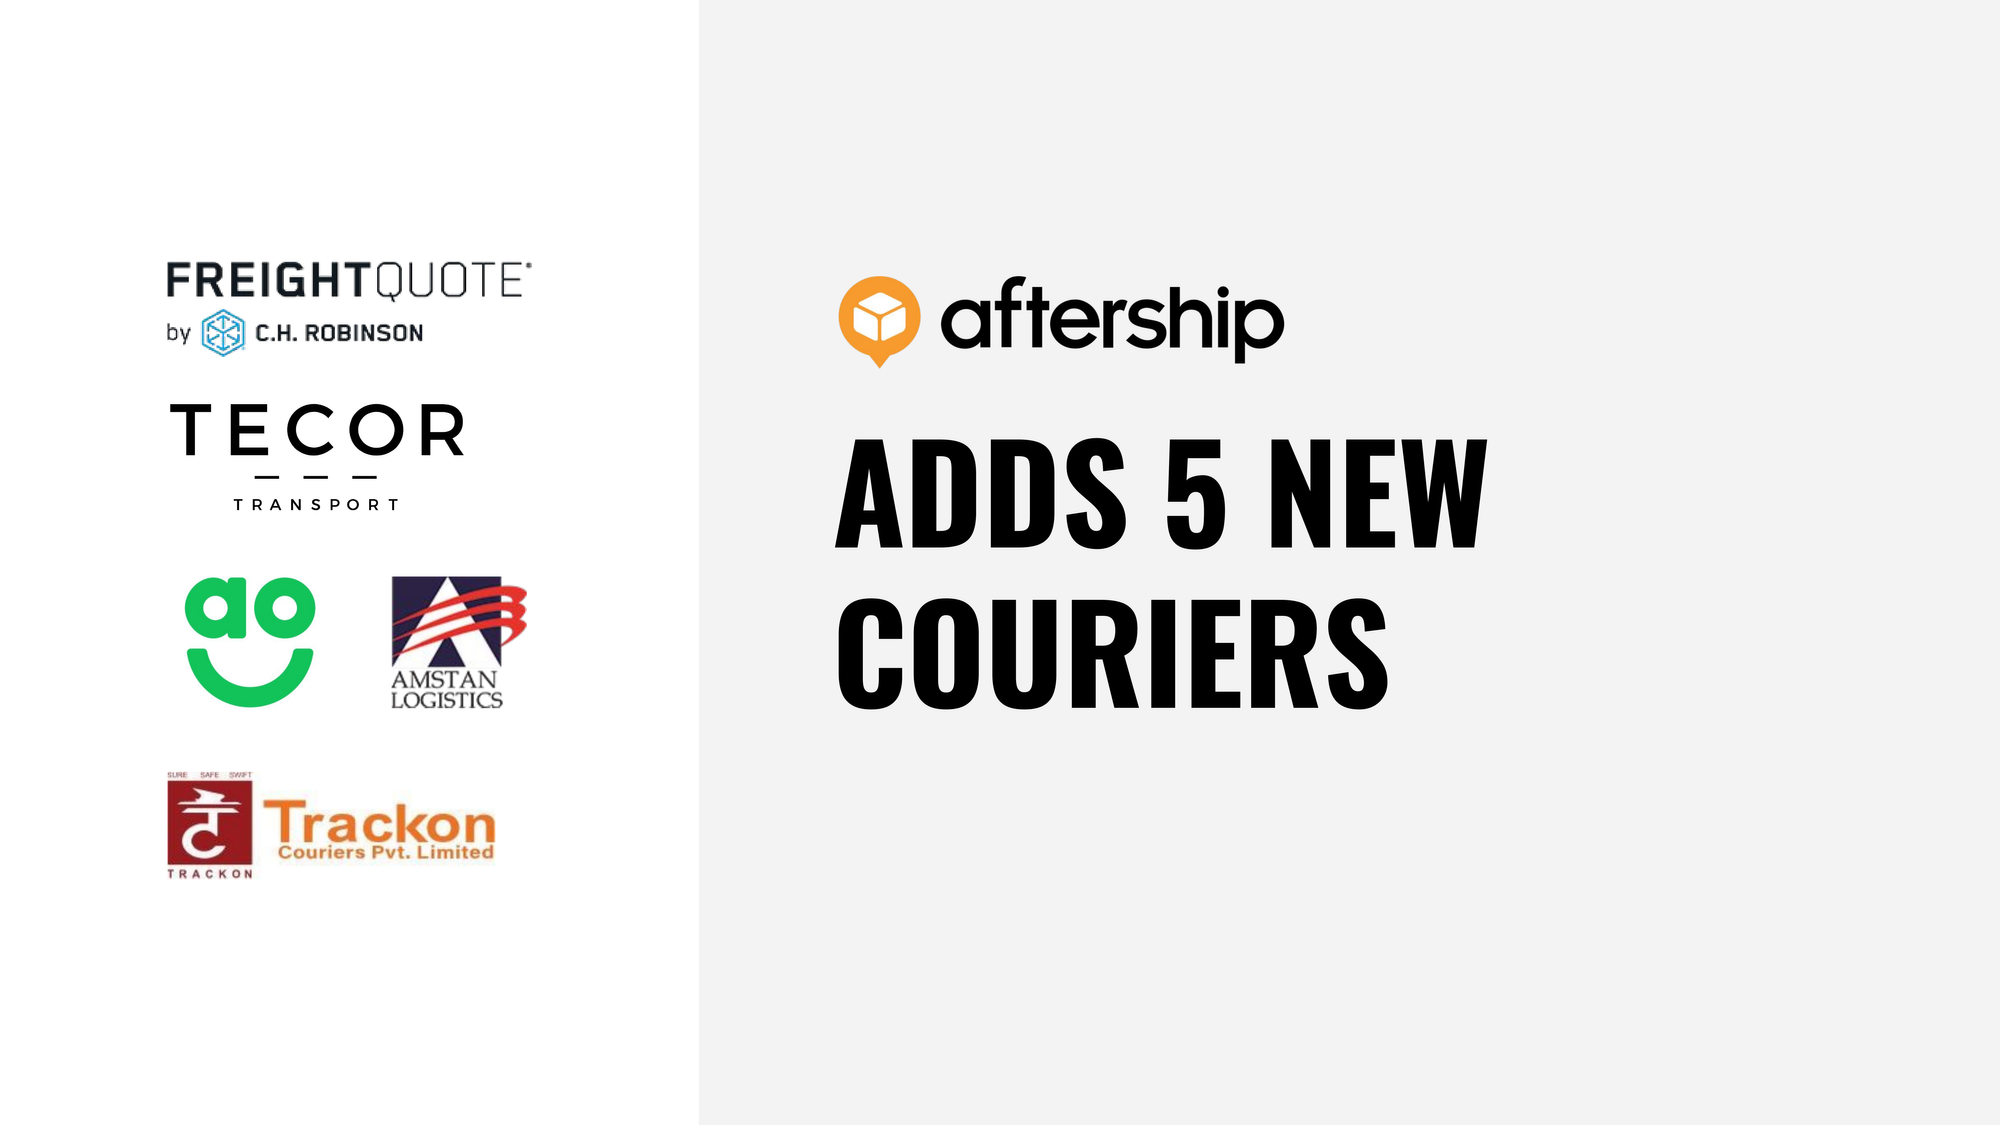 AfterShip adds 5 new couriers this week (7 Dec 2020 to 11 Dec 2020)